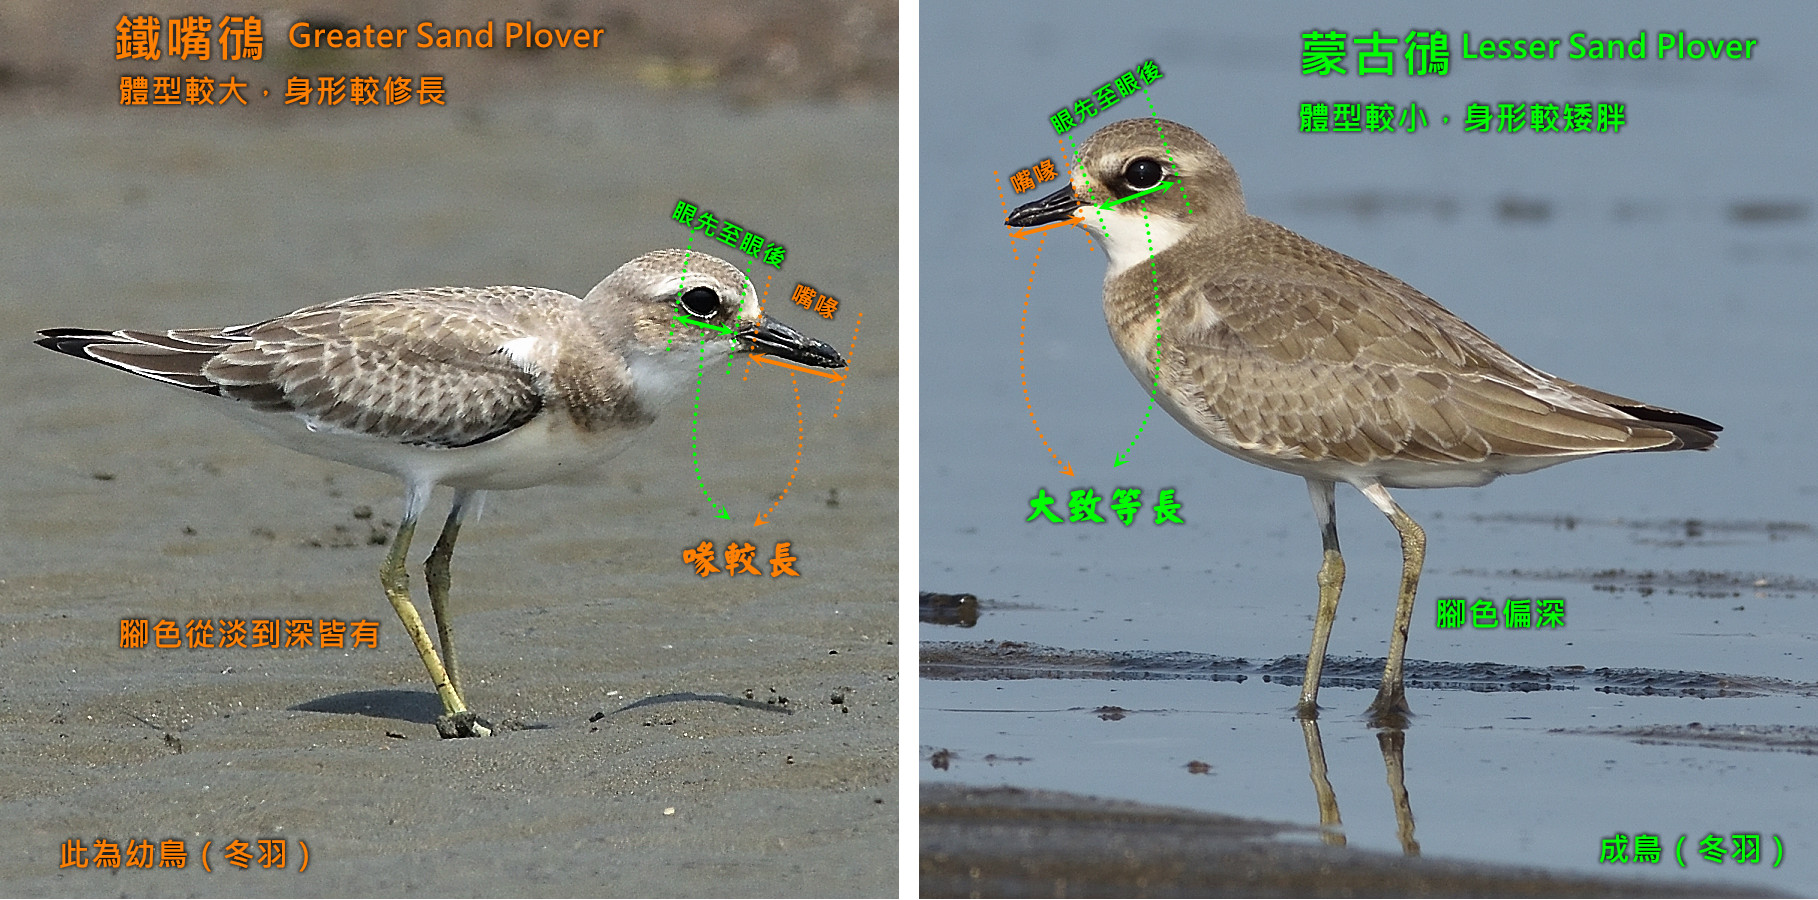 Greater-Lseer_Sand Plover